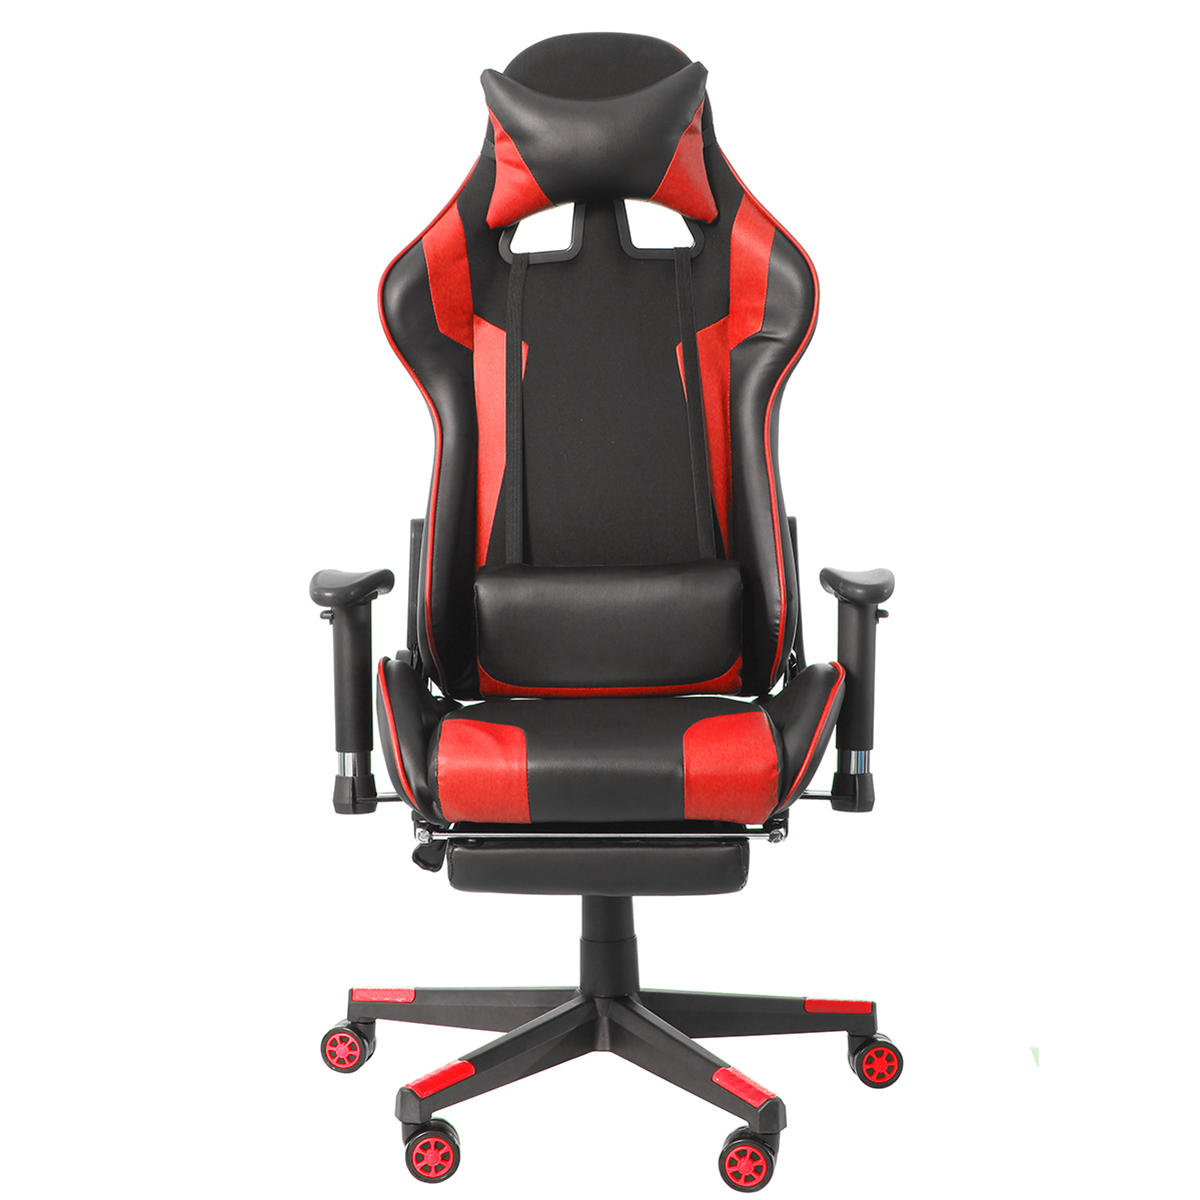 Office Chair Ergonomic Racing Gaming Chair with Adjustable Armrests High-Back PU Leather Laptop Desk Chair with Footrest for Home Office